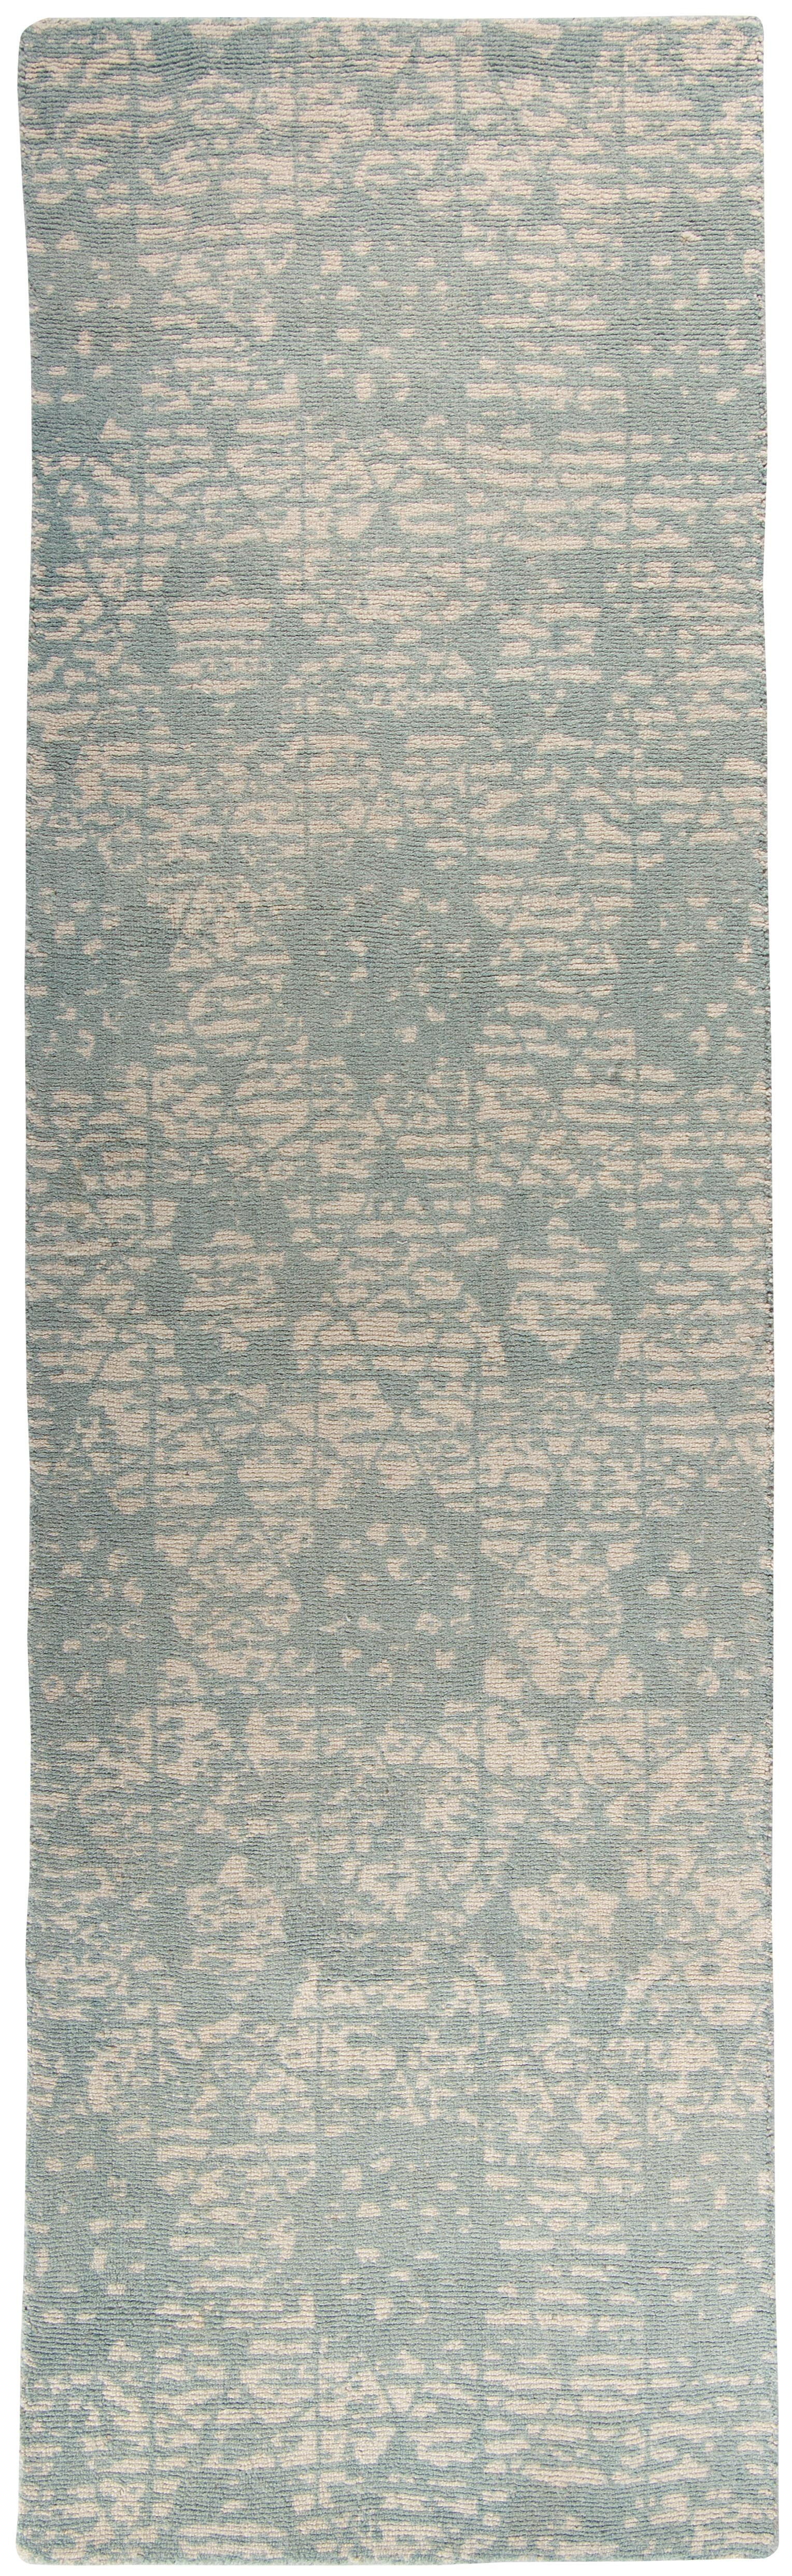 Dywan Carpetoutlet Handtufted 75x245 Nr 1539 Dywany Do 200